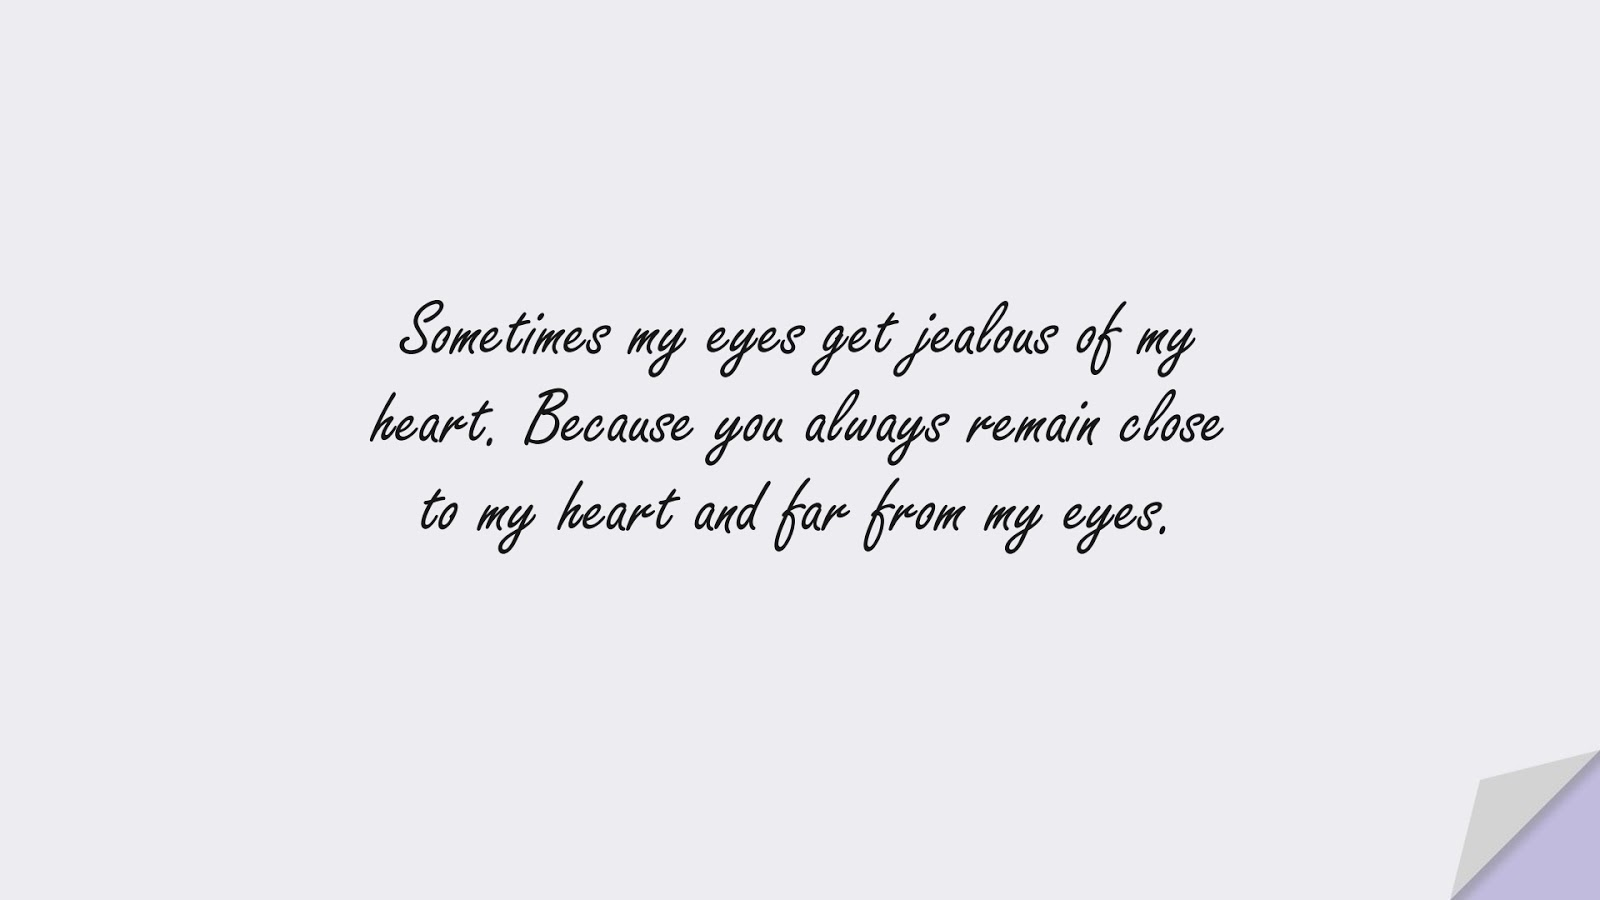 Sometimes my eyes get jealous of my heart. Because you always remain close to my heart and far from my eyes.FALSE